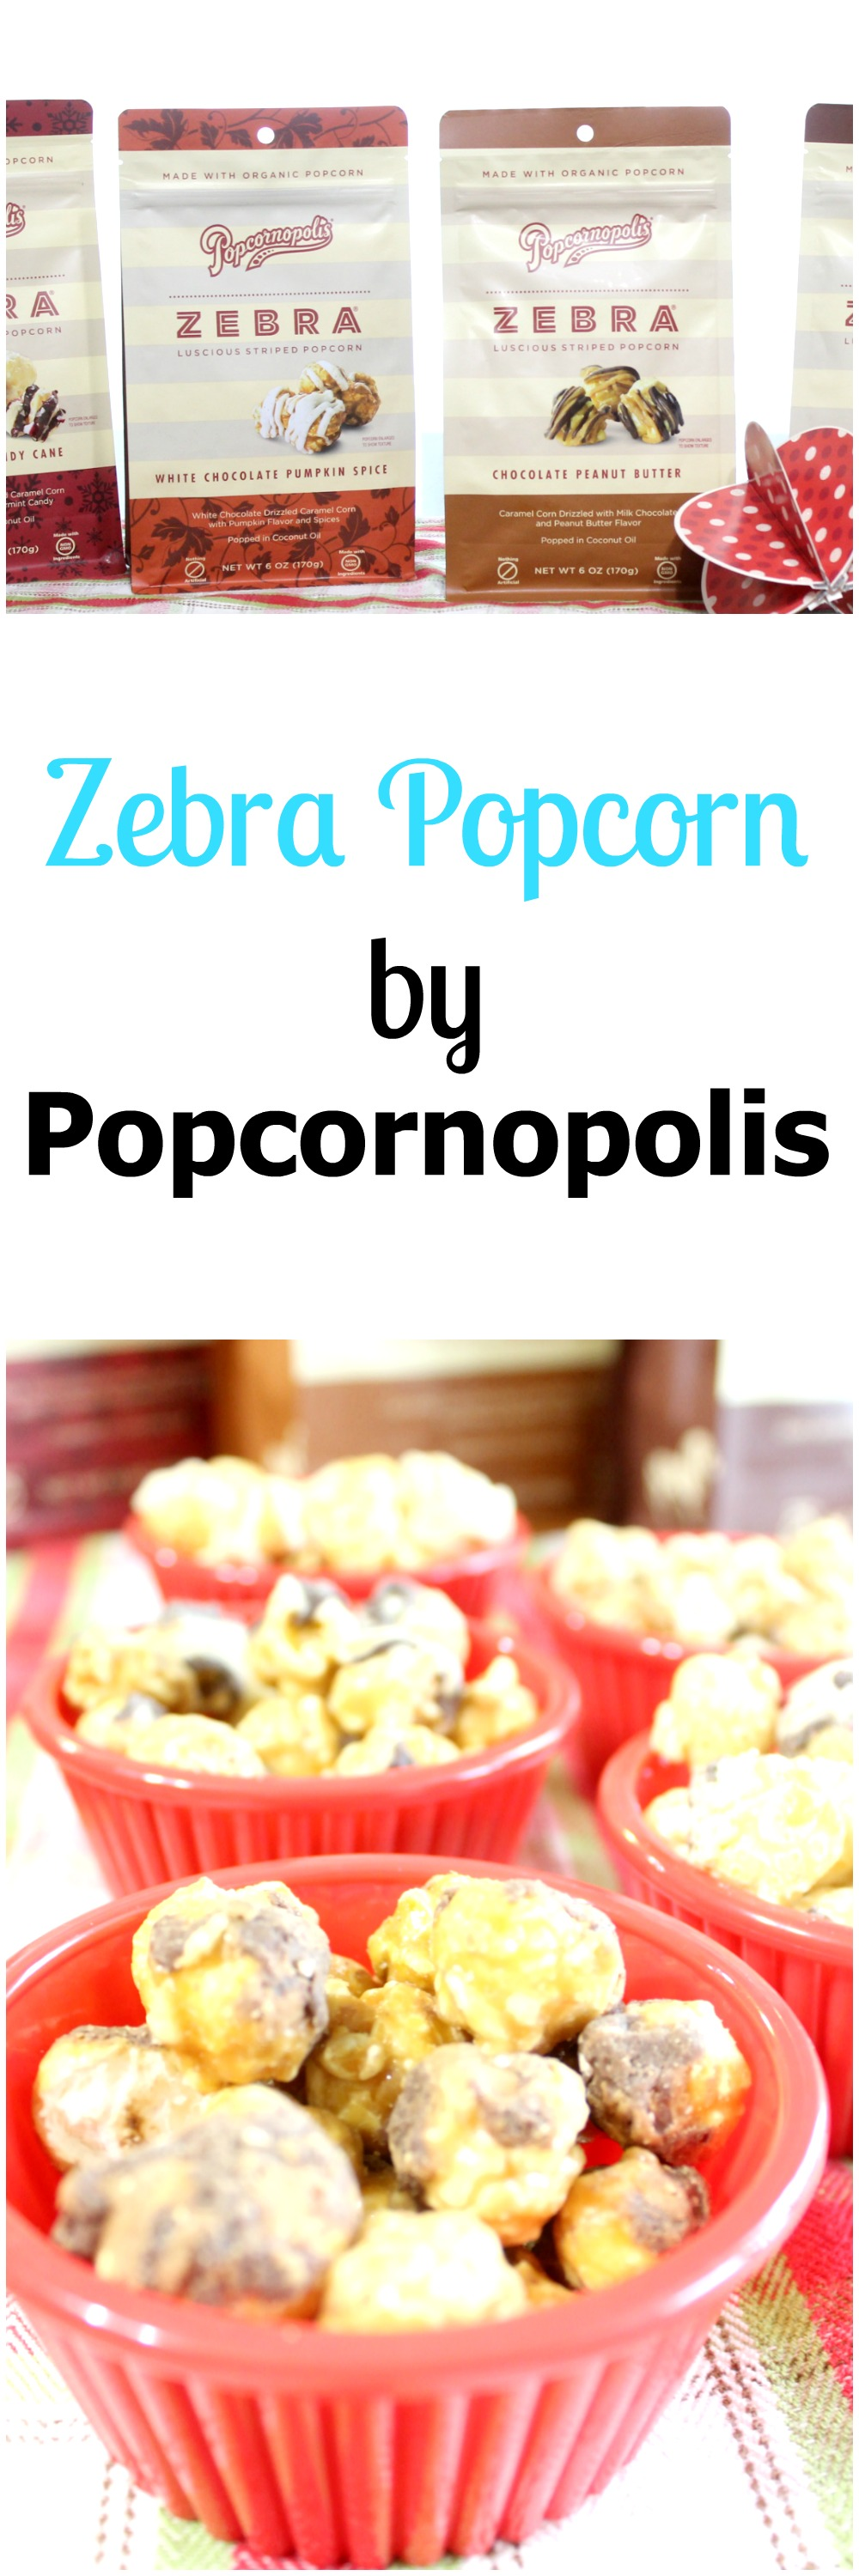 Holiday flavors of Zebra Popcorn by Popcornopolis makes a great Christmas gift!